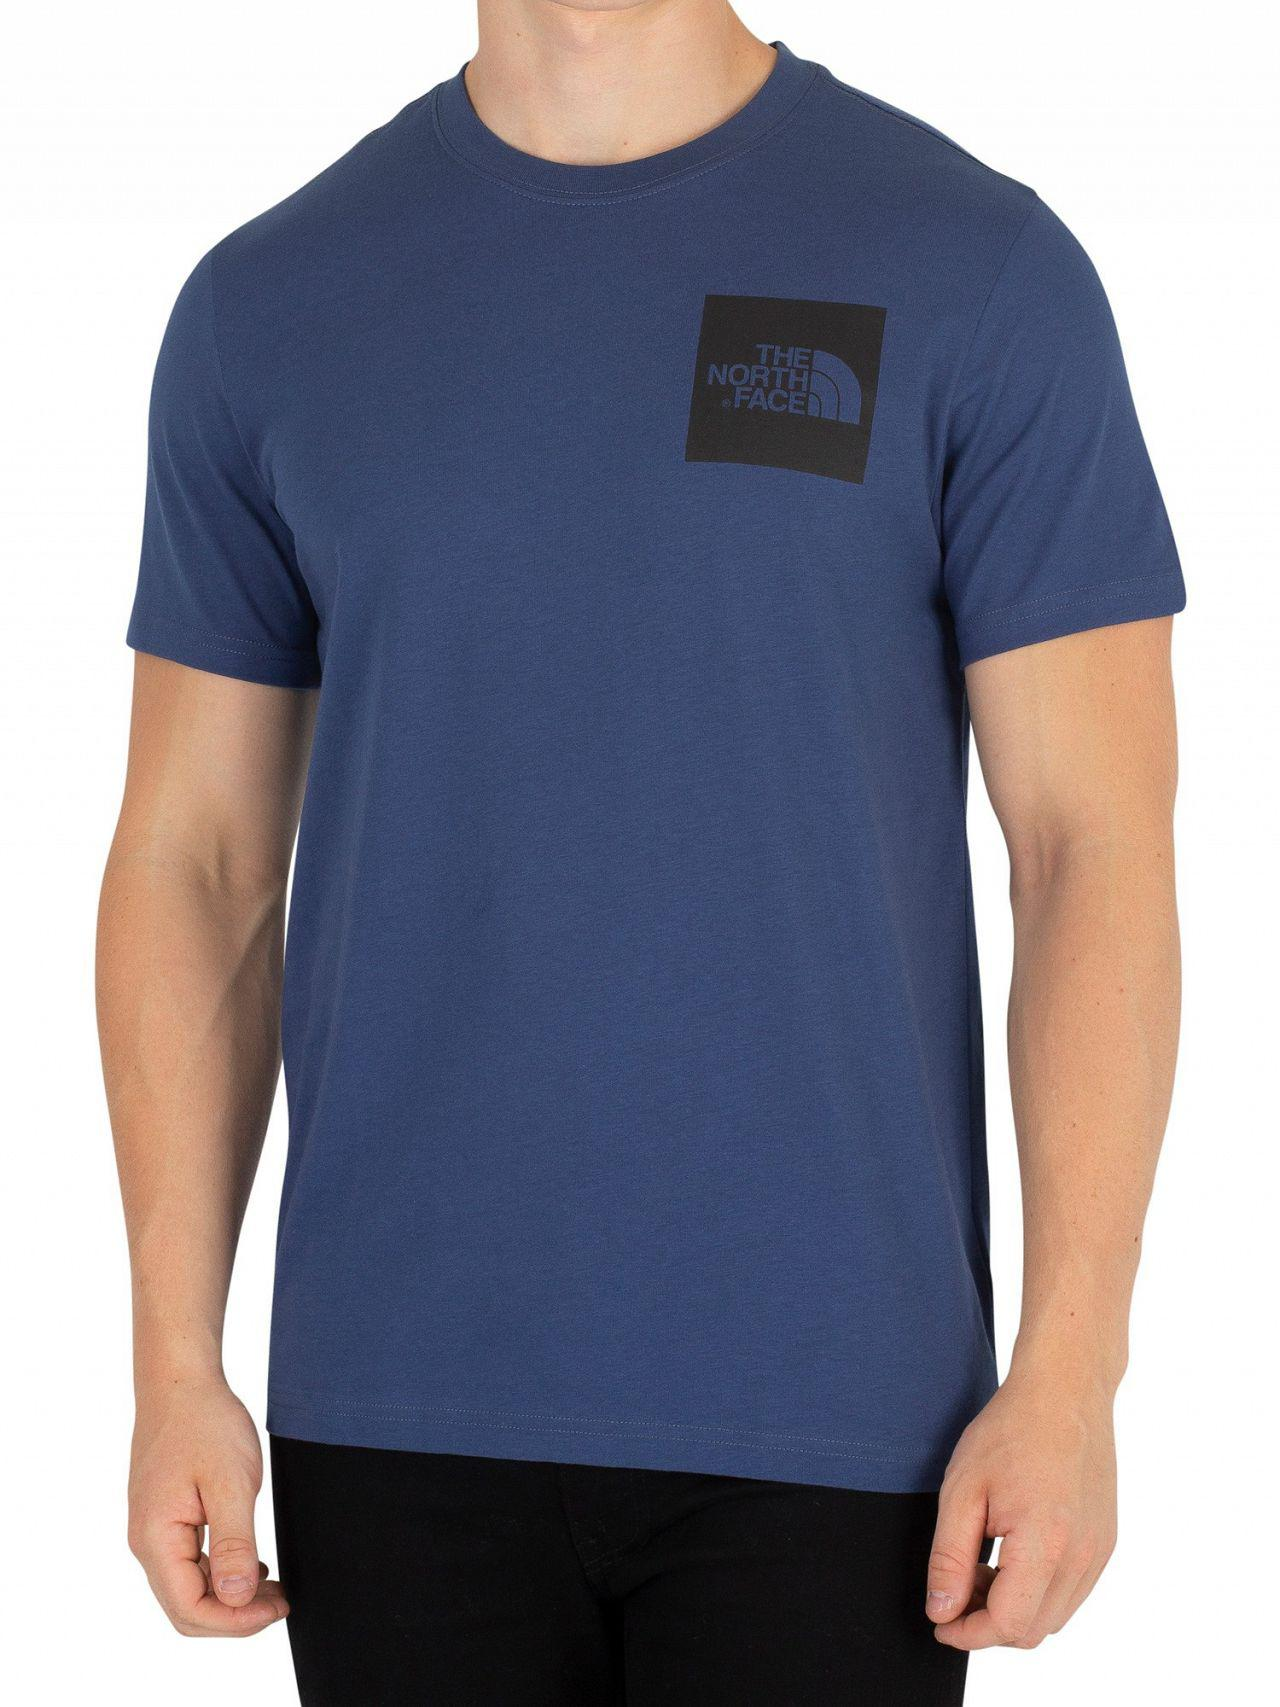 c4054fd31 Lyst - The North Face Shady Blue Fine T-shirt in Blue for Men - Save 44%